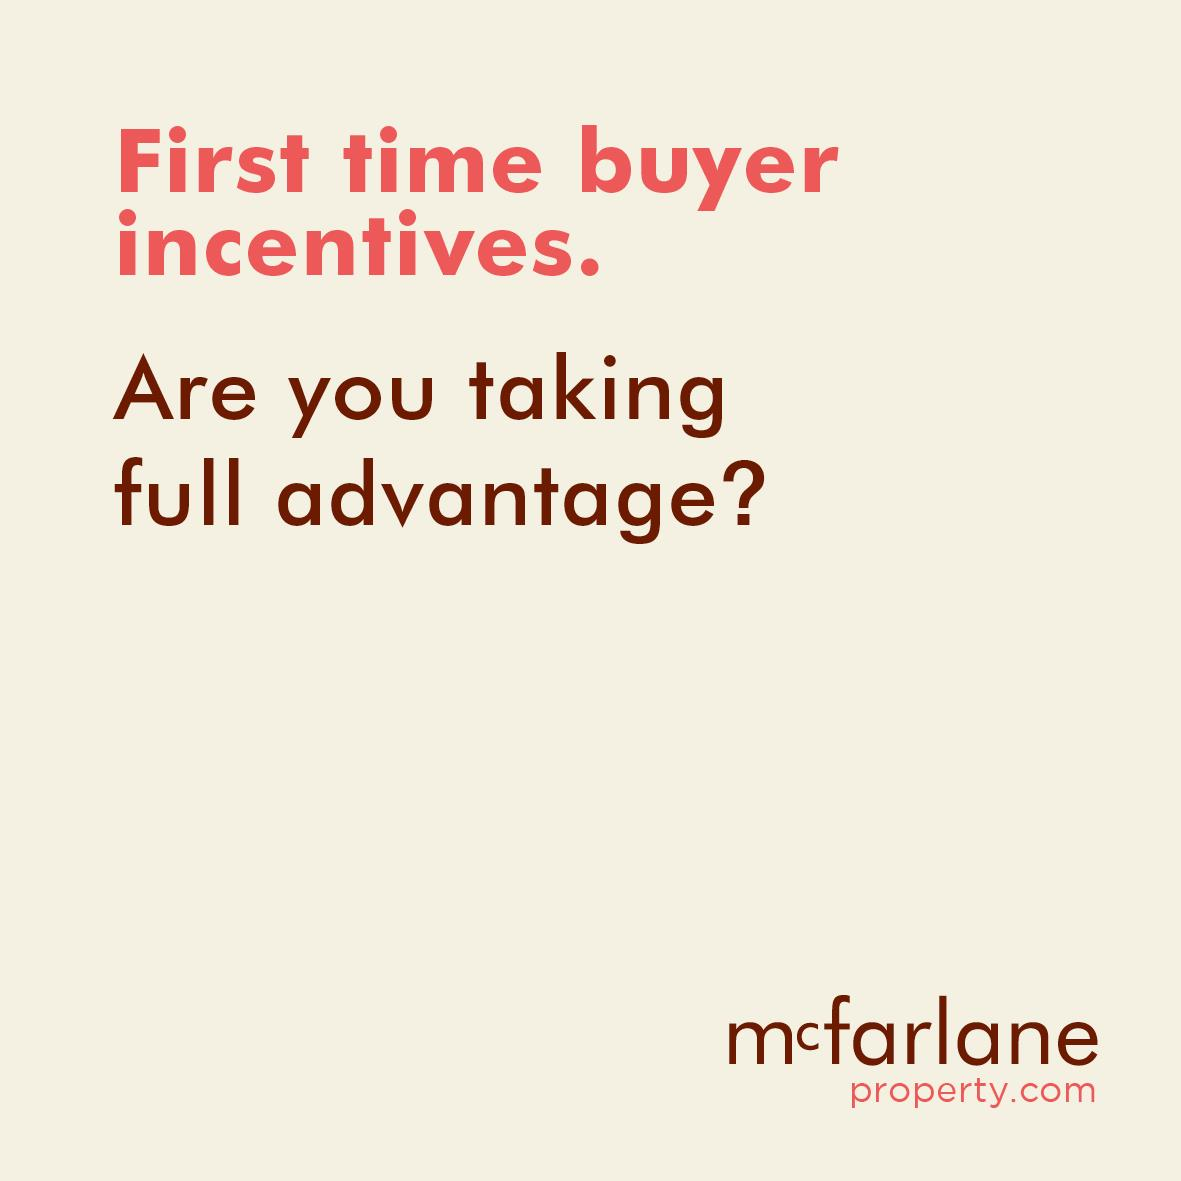 First time buyer incentives – are you taking full advantage?